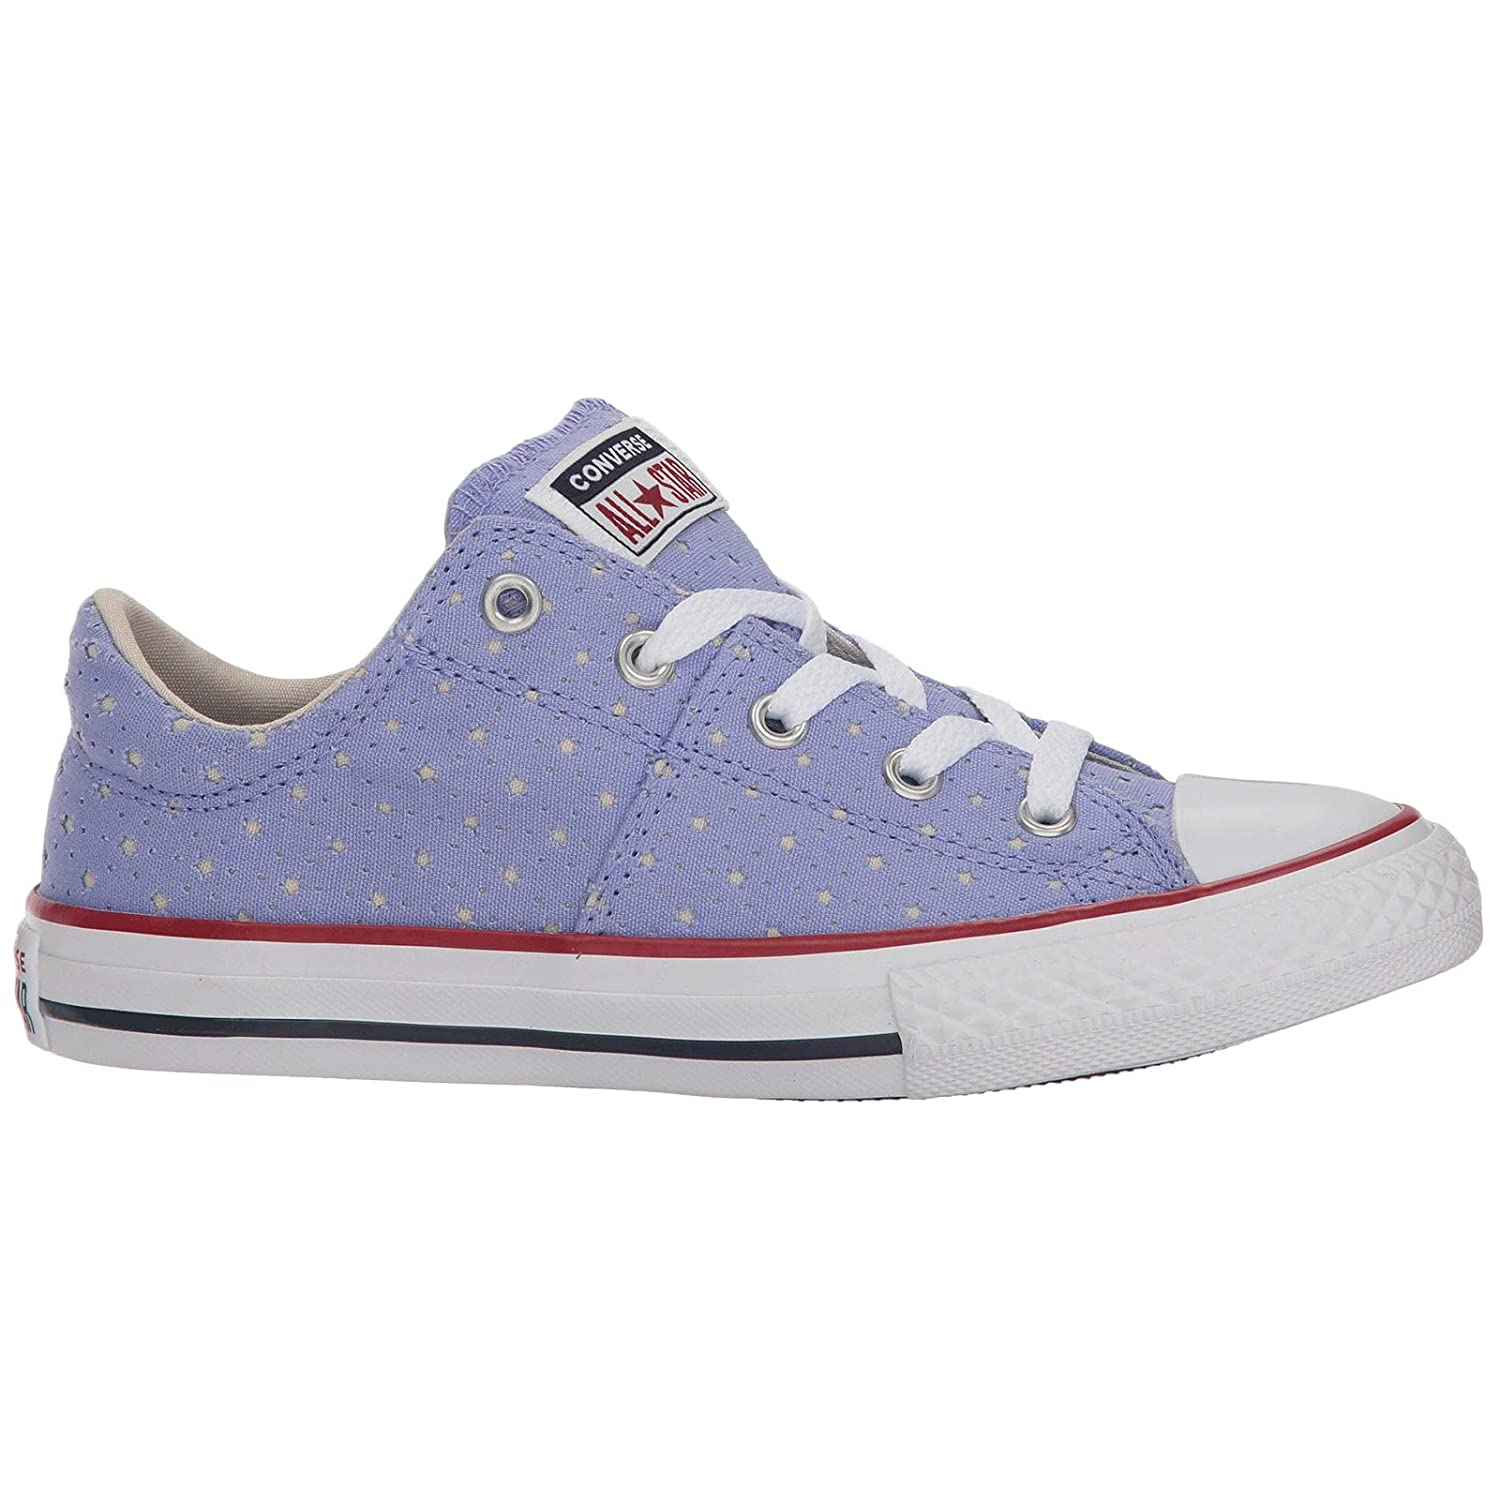 Converse Men's Madison Star Perforated Low Top Sneaker